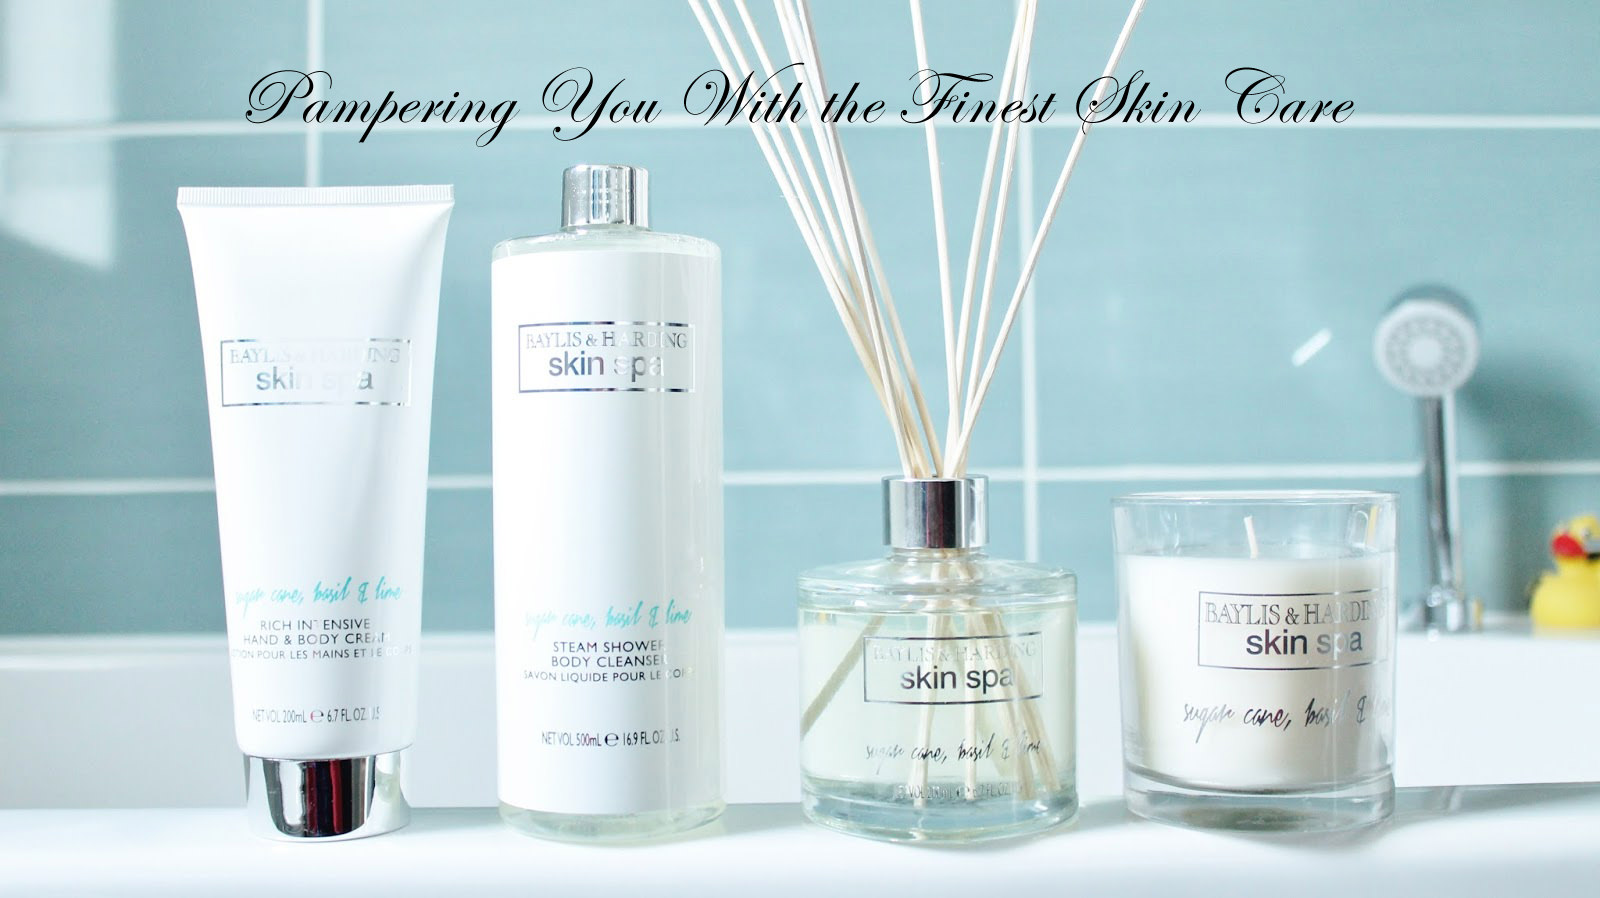 Pampering You With the Finest Skin Care